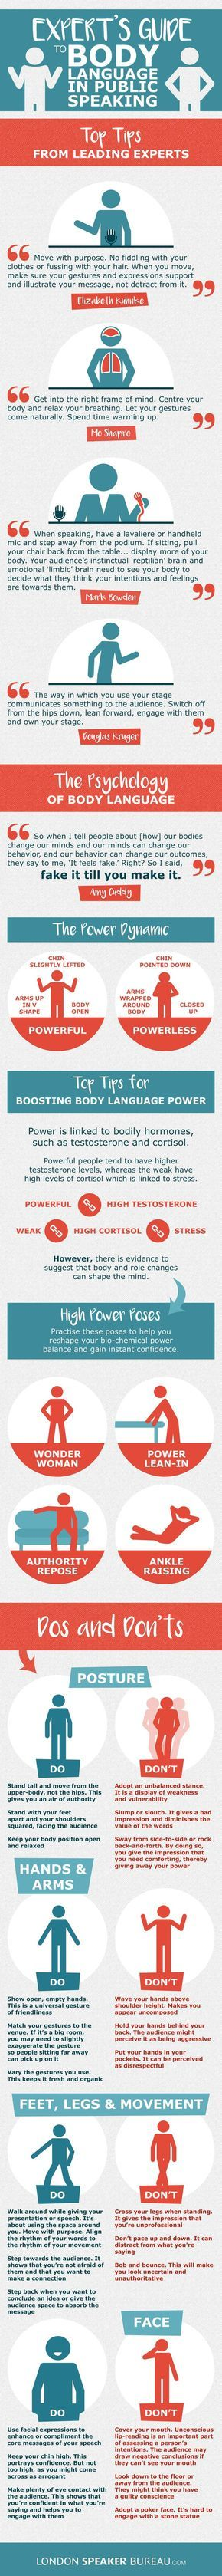 Expert's Guide to Body Language In Public Speaking #Infographic #Communication #PublicSpeaking www.ideatevision.com #ideatevision